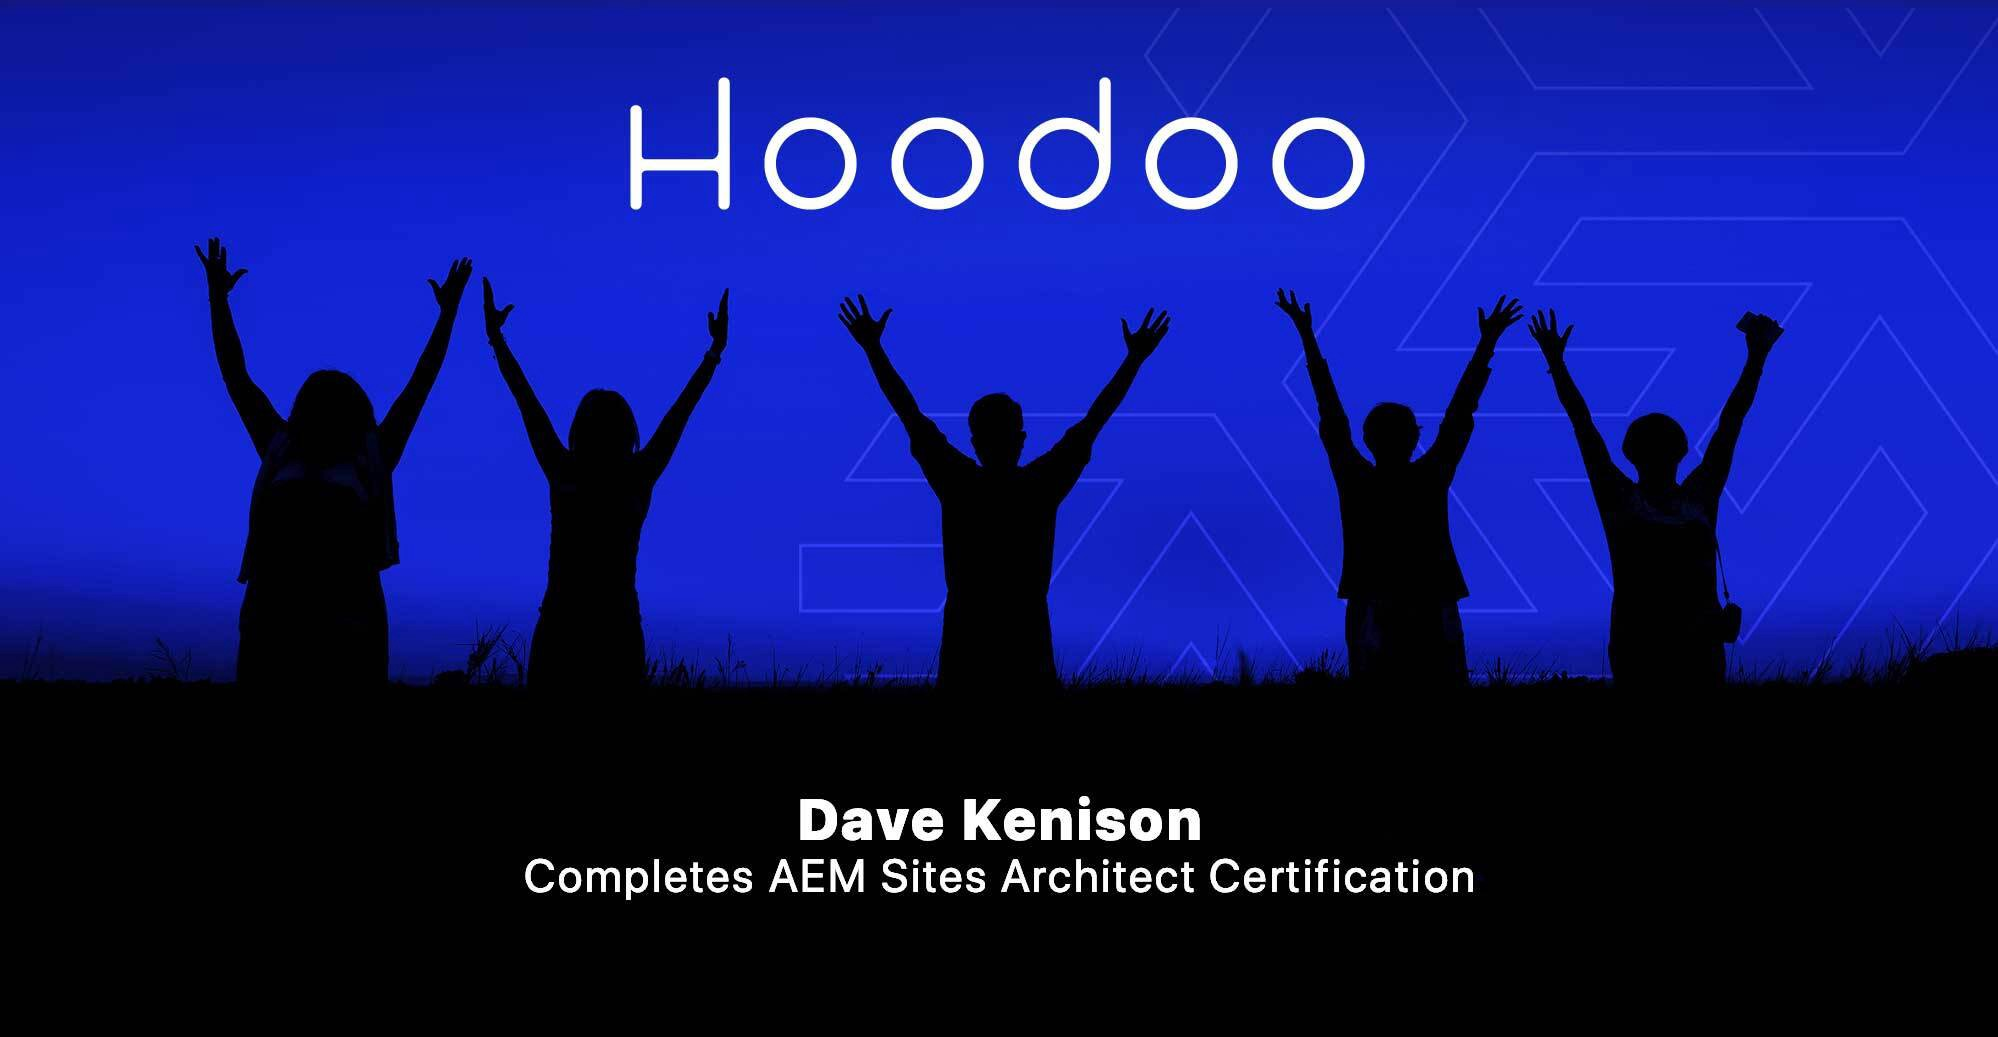 Dave Kenison Completes AEM Sites Architect Certification